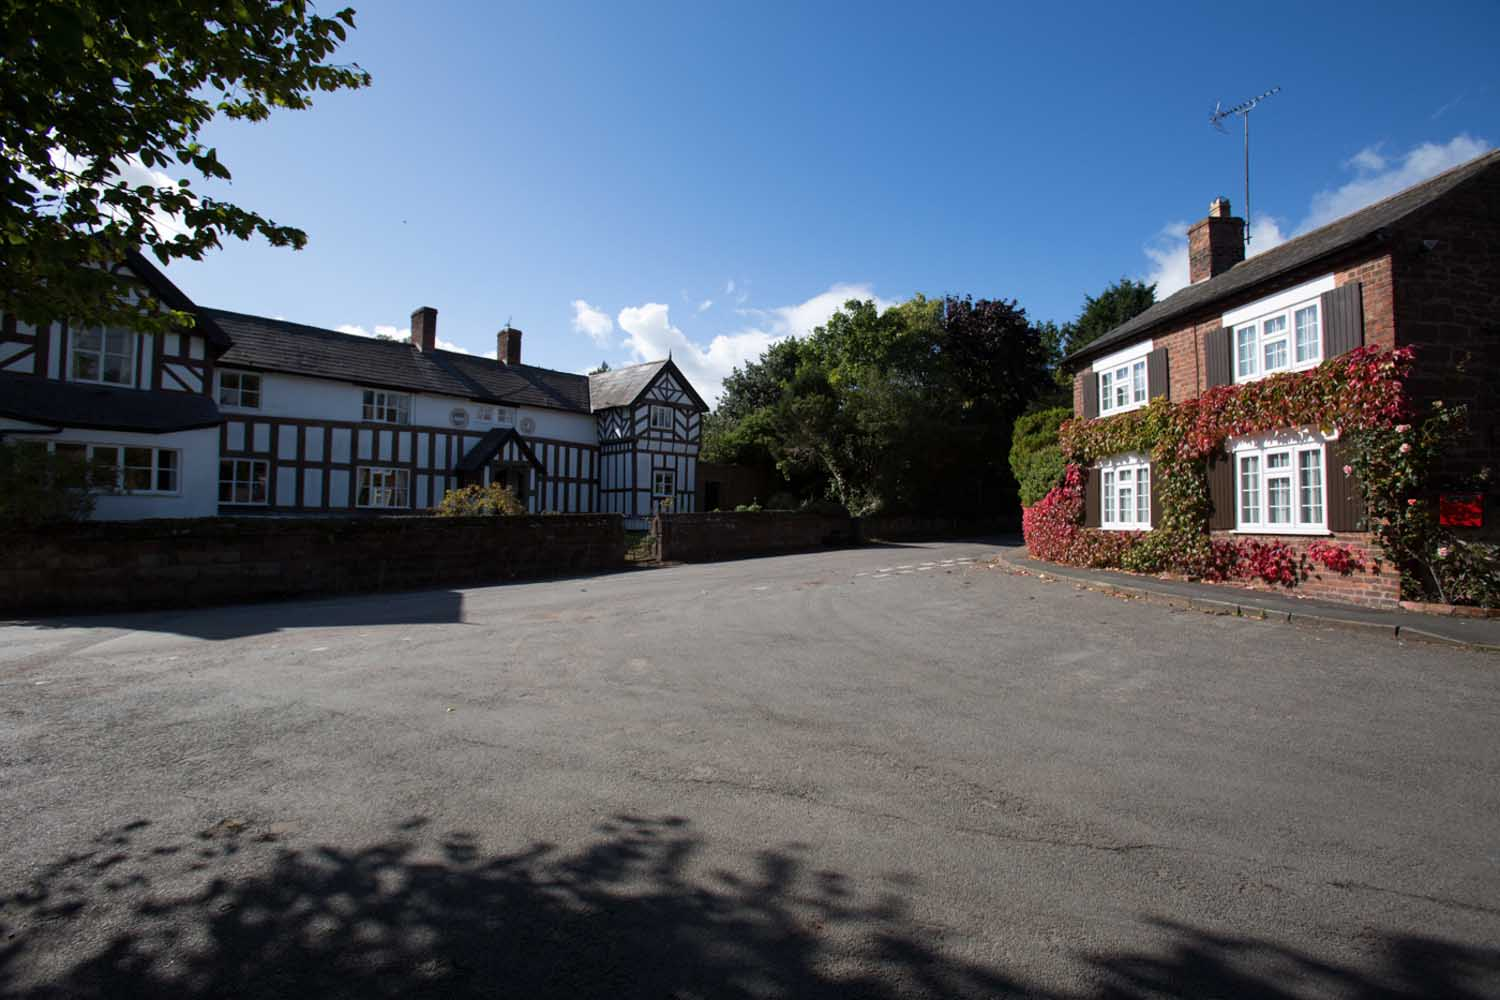 Village of Churton, Cheshire, England. Picturesque view of Churton's Pump Lane with the Grade II listed Churton Hall on the right of the image.